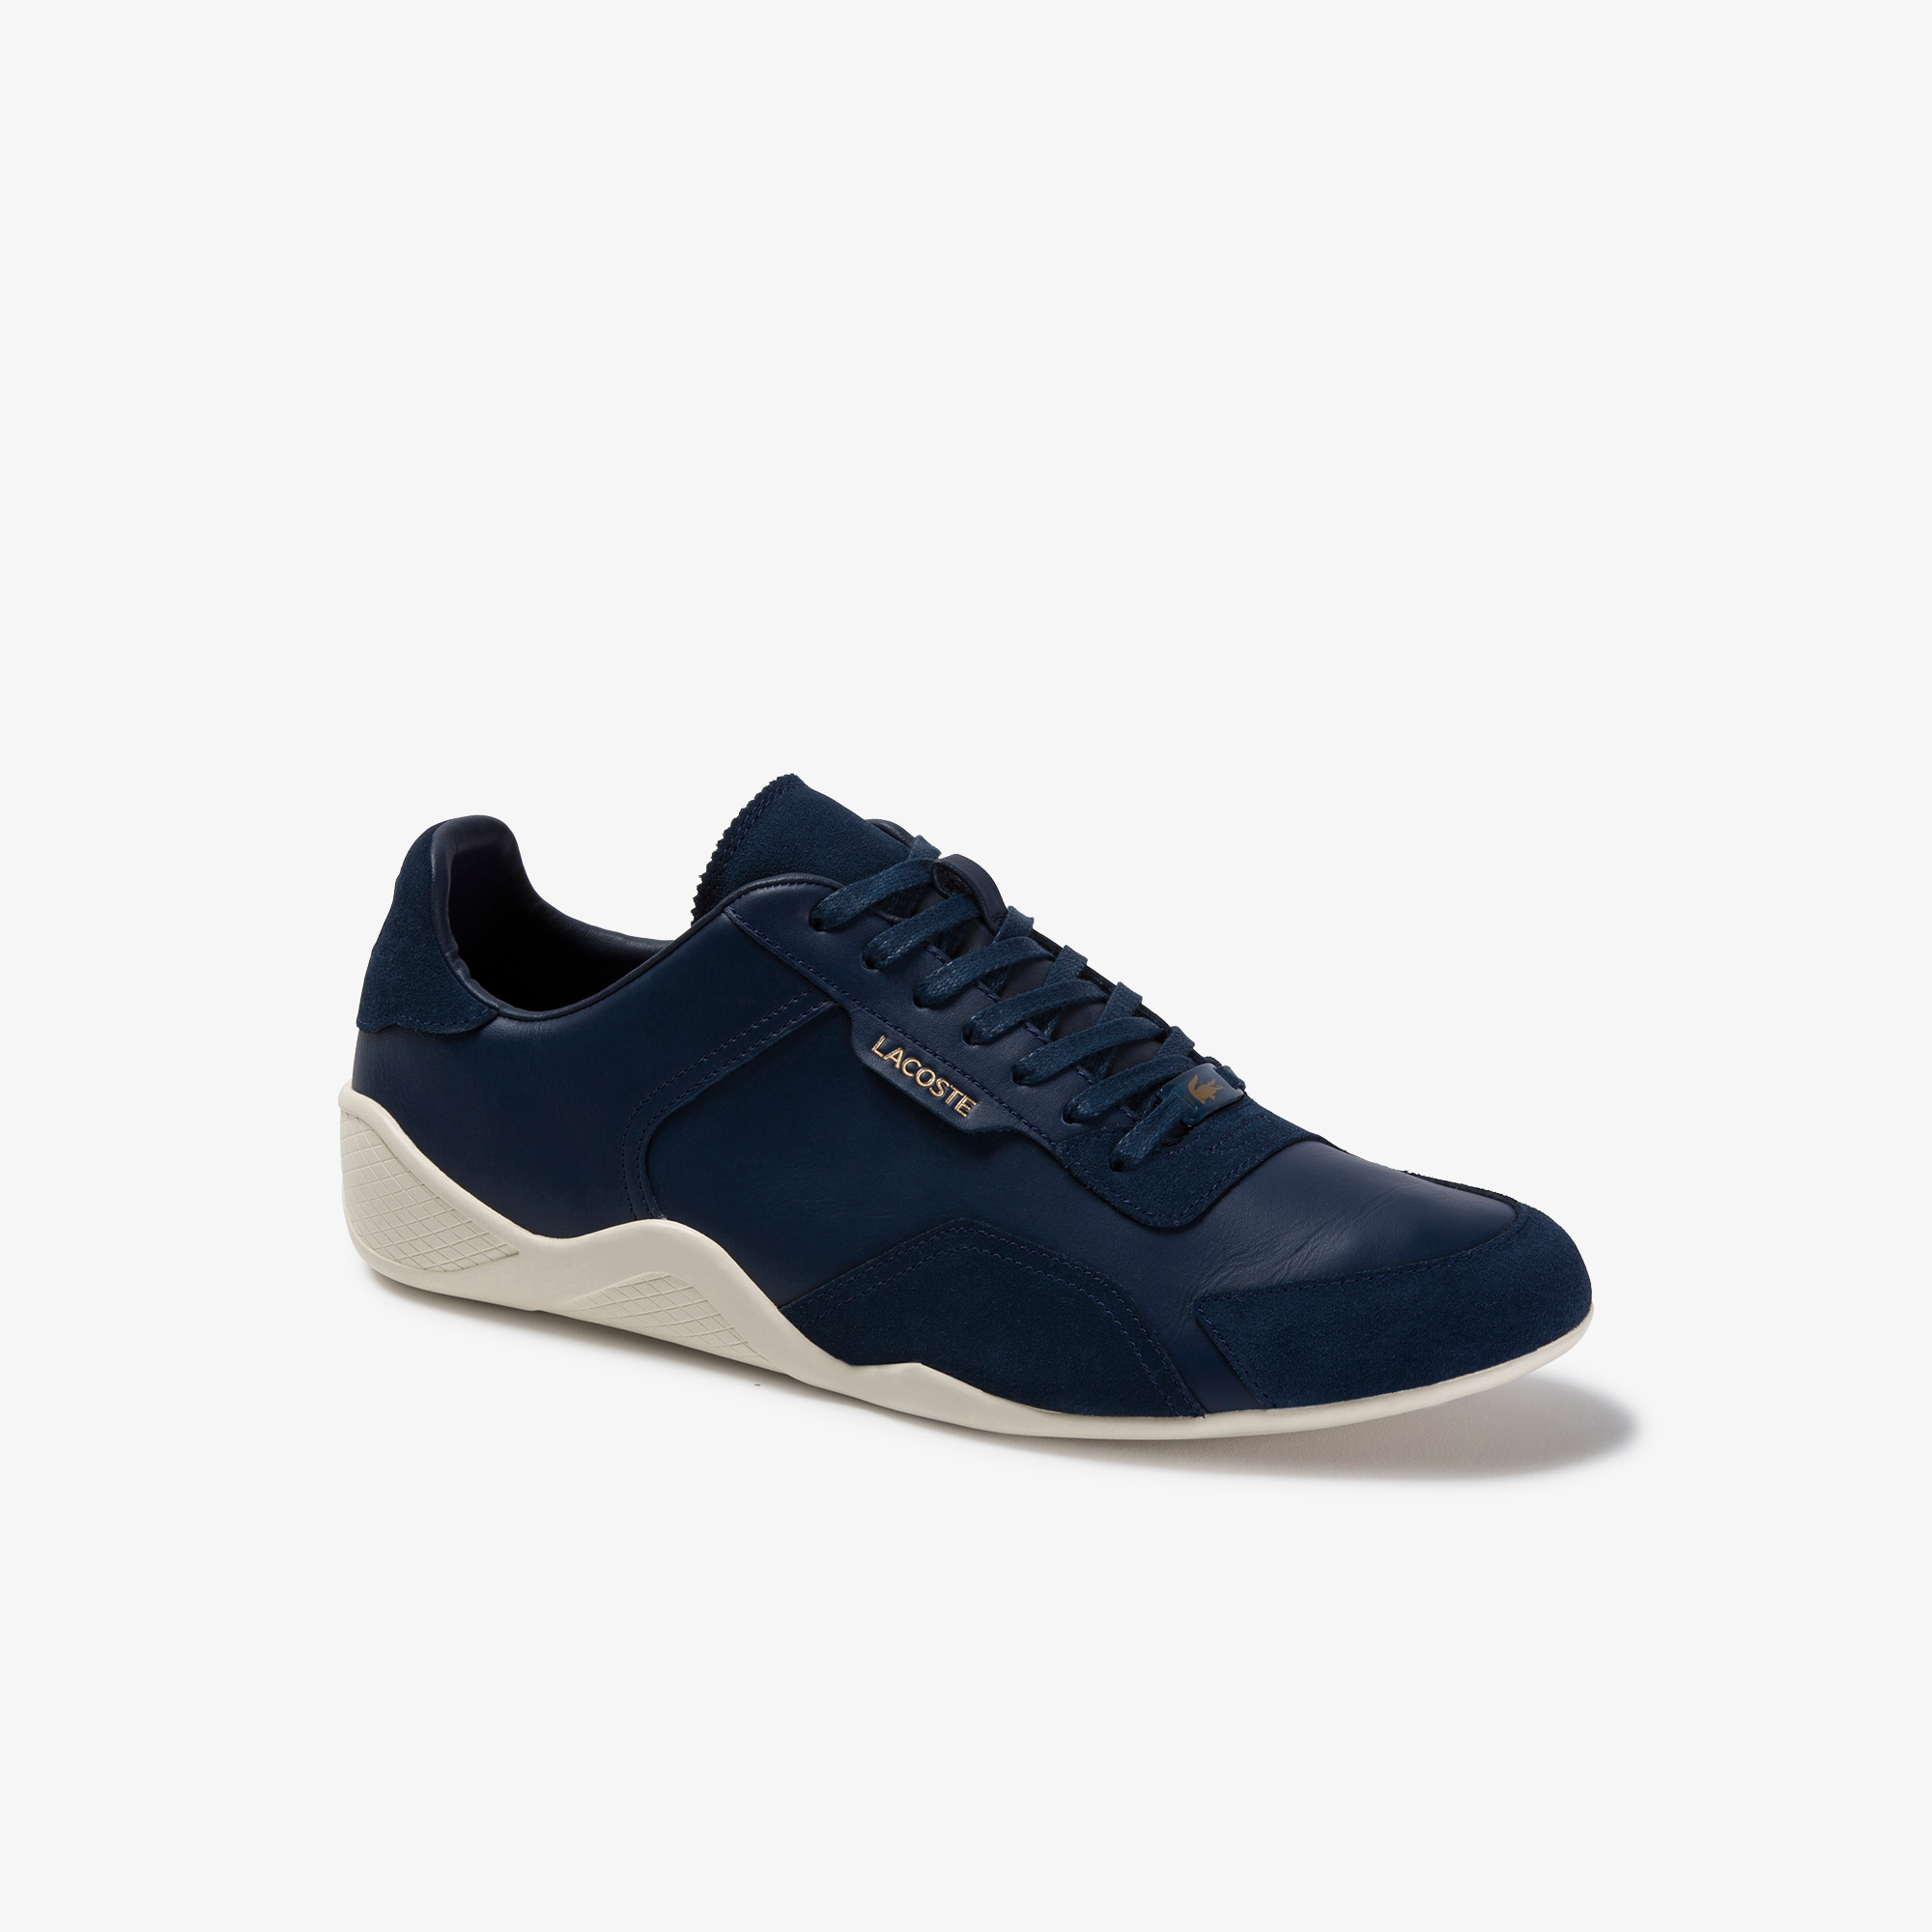 Men's Hapona Leather and Suede Sneakers